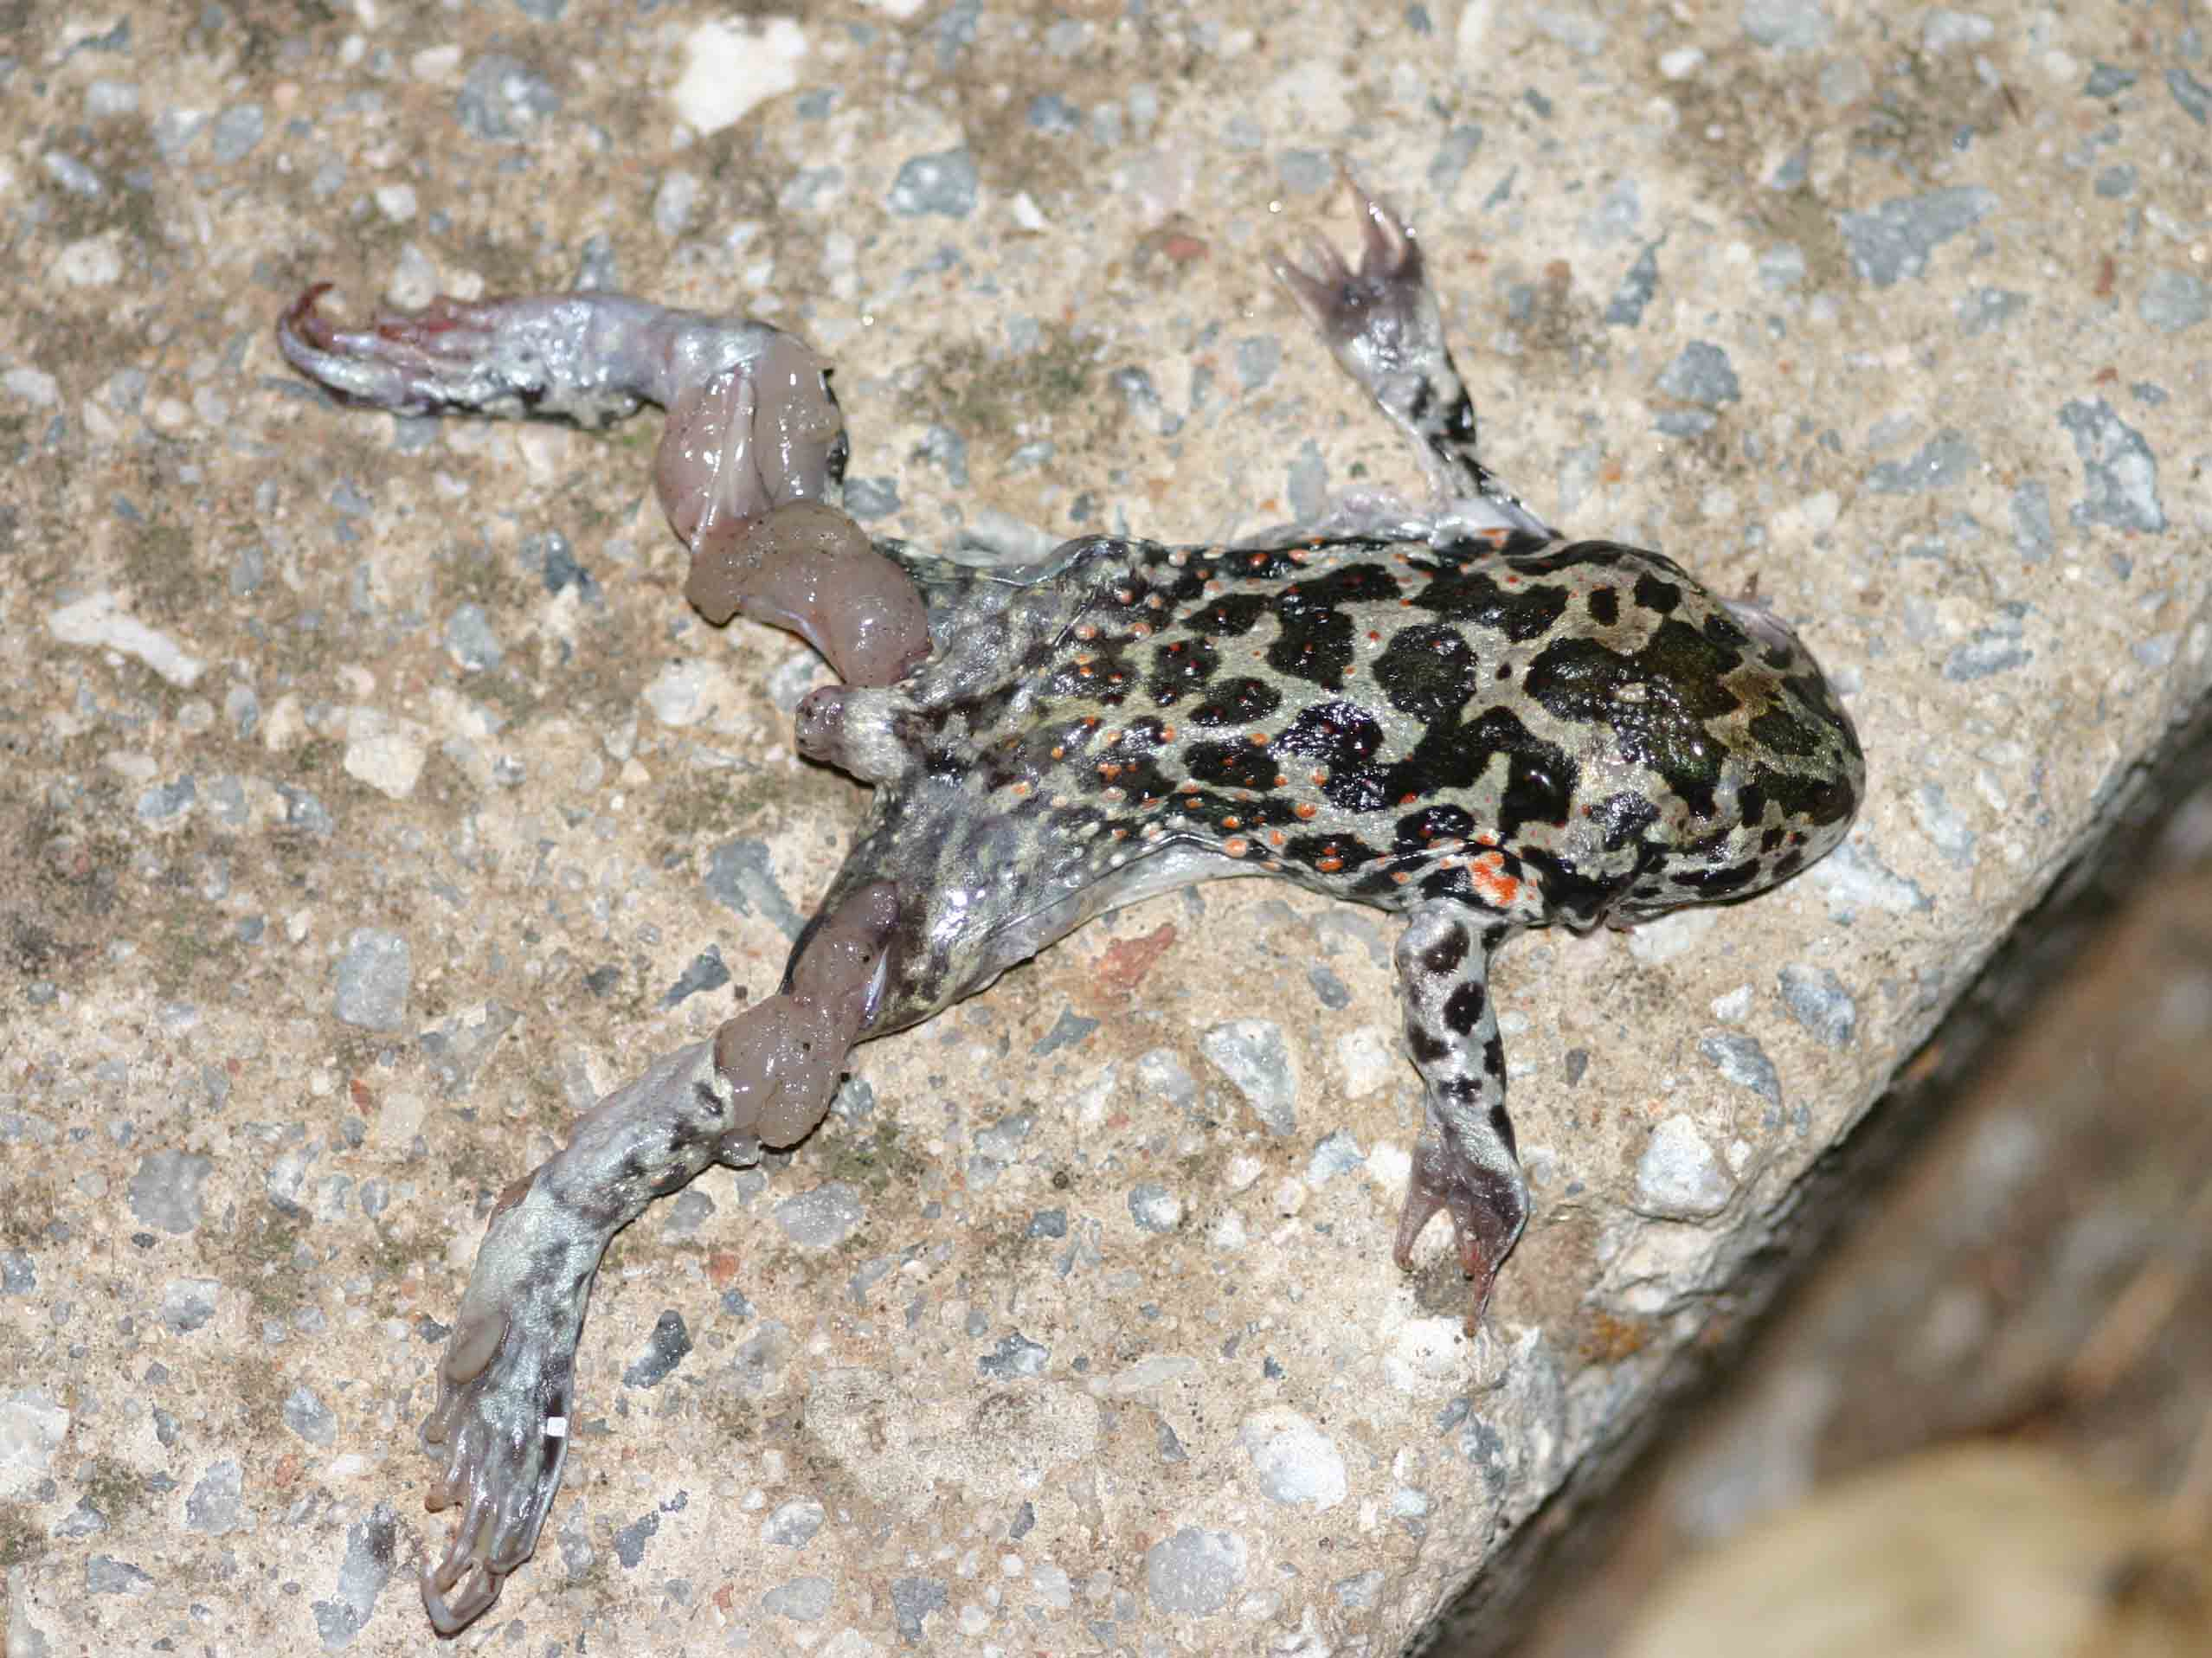 My only Eastern Spadefoot toad (Pelobates syriacus), just killed before I could get there